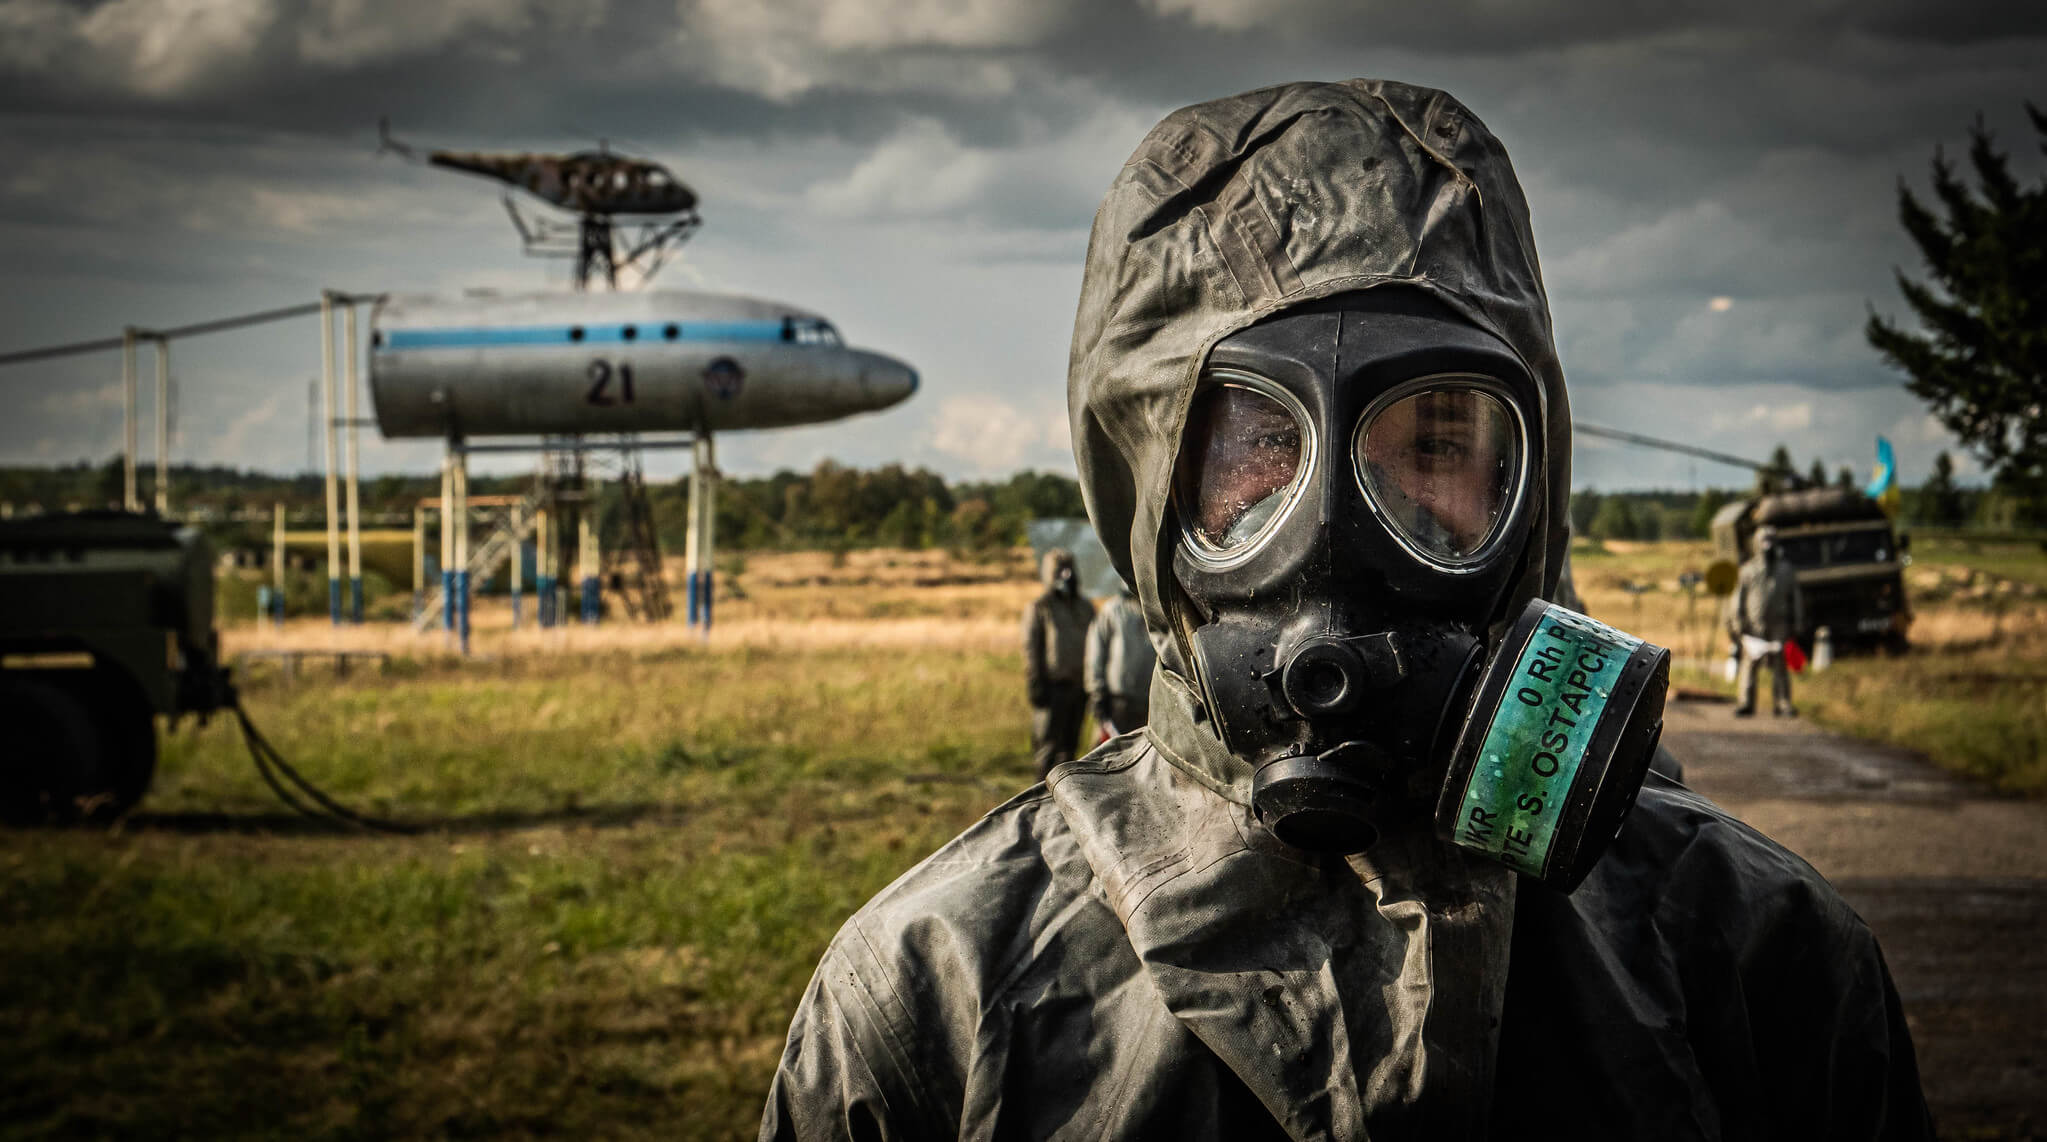 Klijn-foto-A member of the Ukrainian vehicle decontamination team in exercise Rapid Trident, an annual, multinational exercise, which took place in Ukraine in September 2019. © NATO